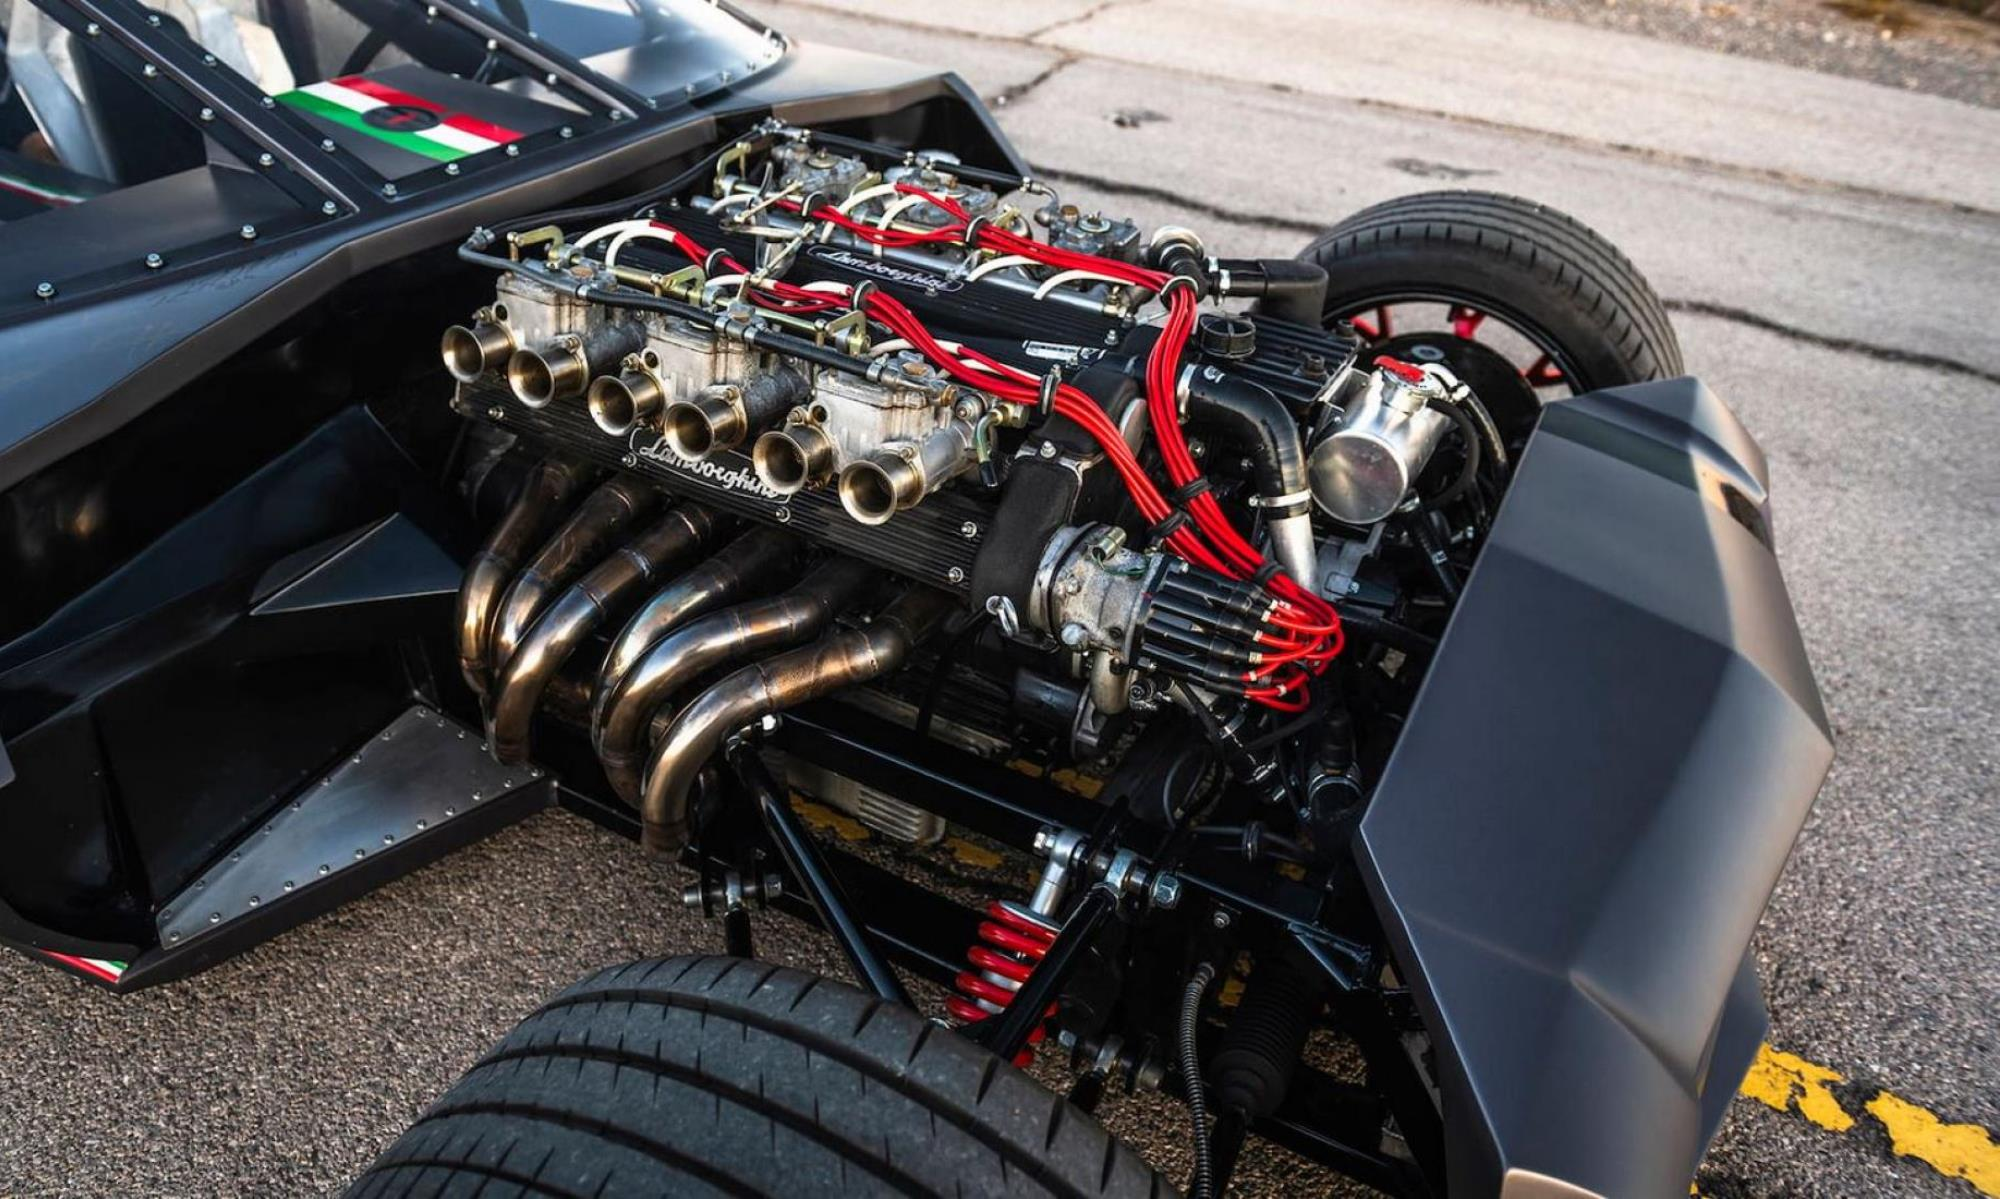 Lamborghini Espada Rat Rod engine 1